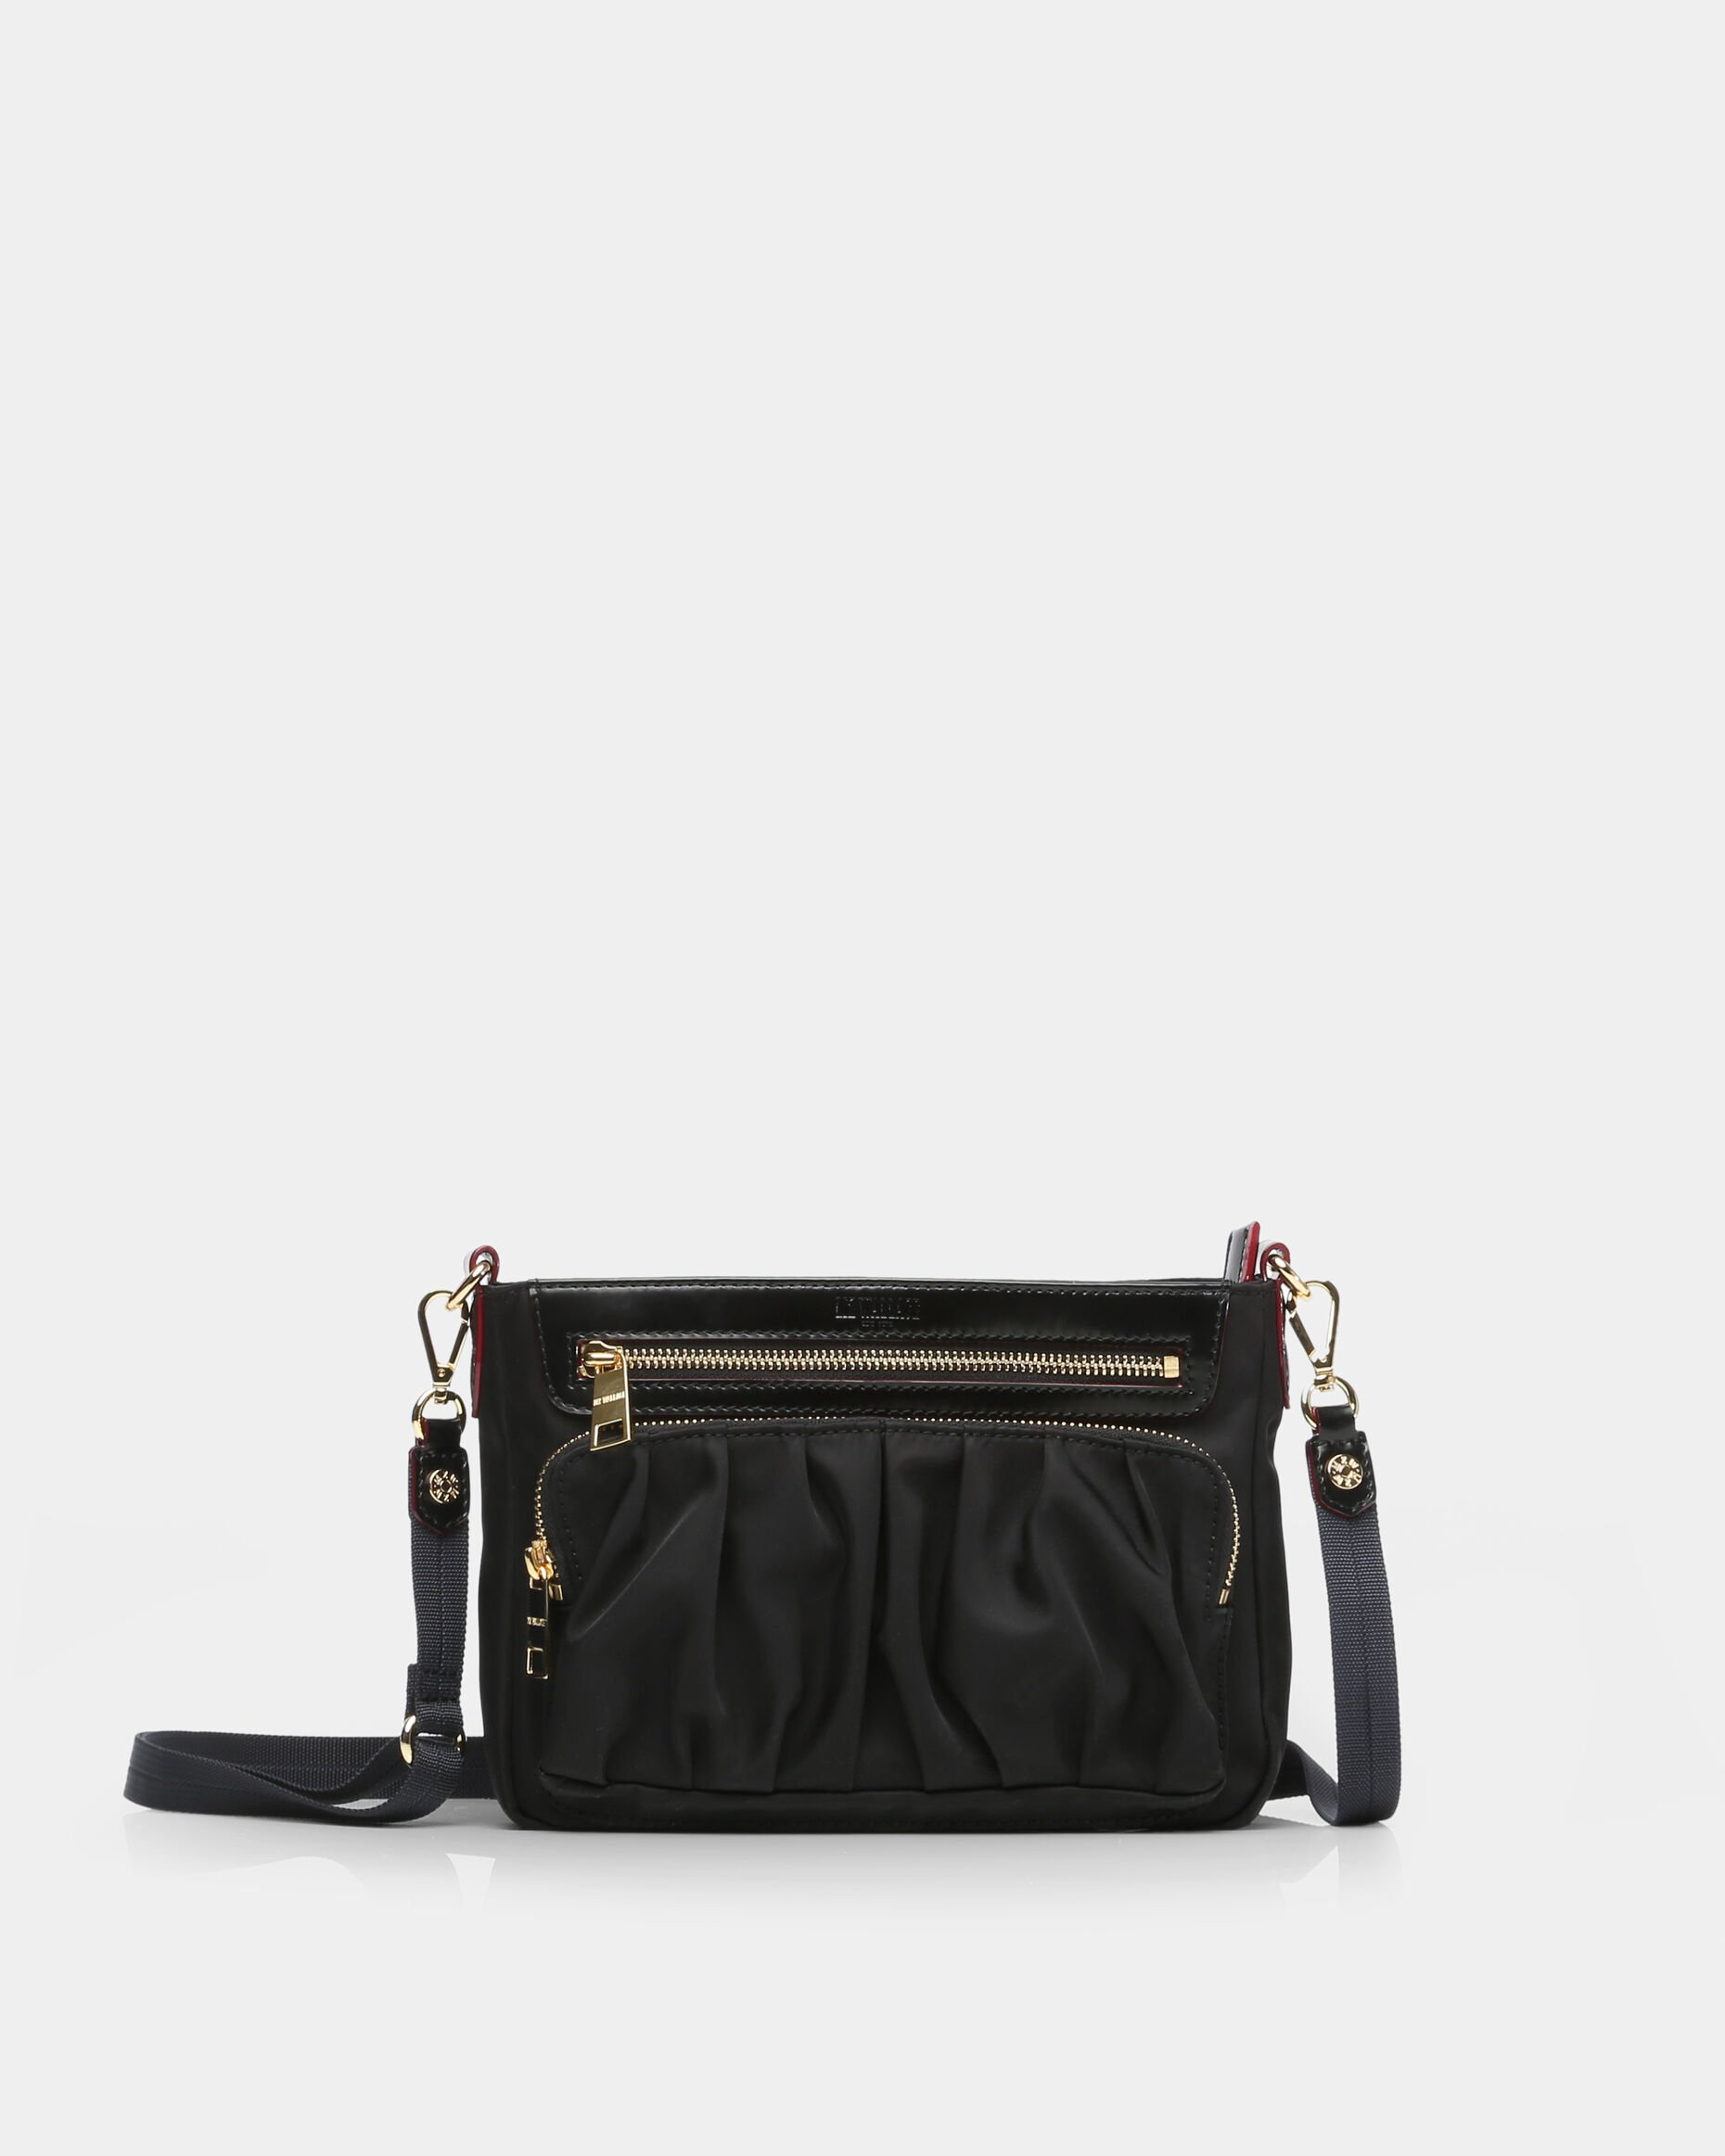 Abbey Crossbody - Black Bedford (6030089)